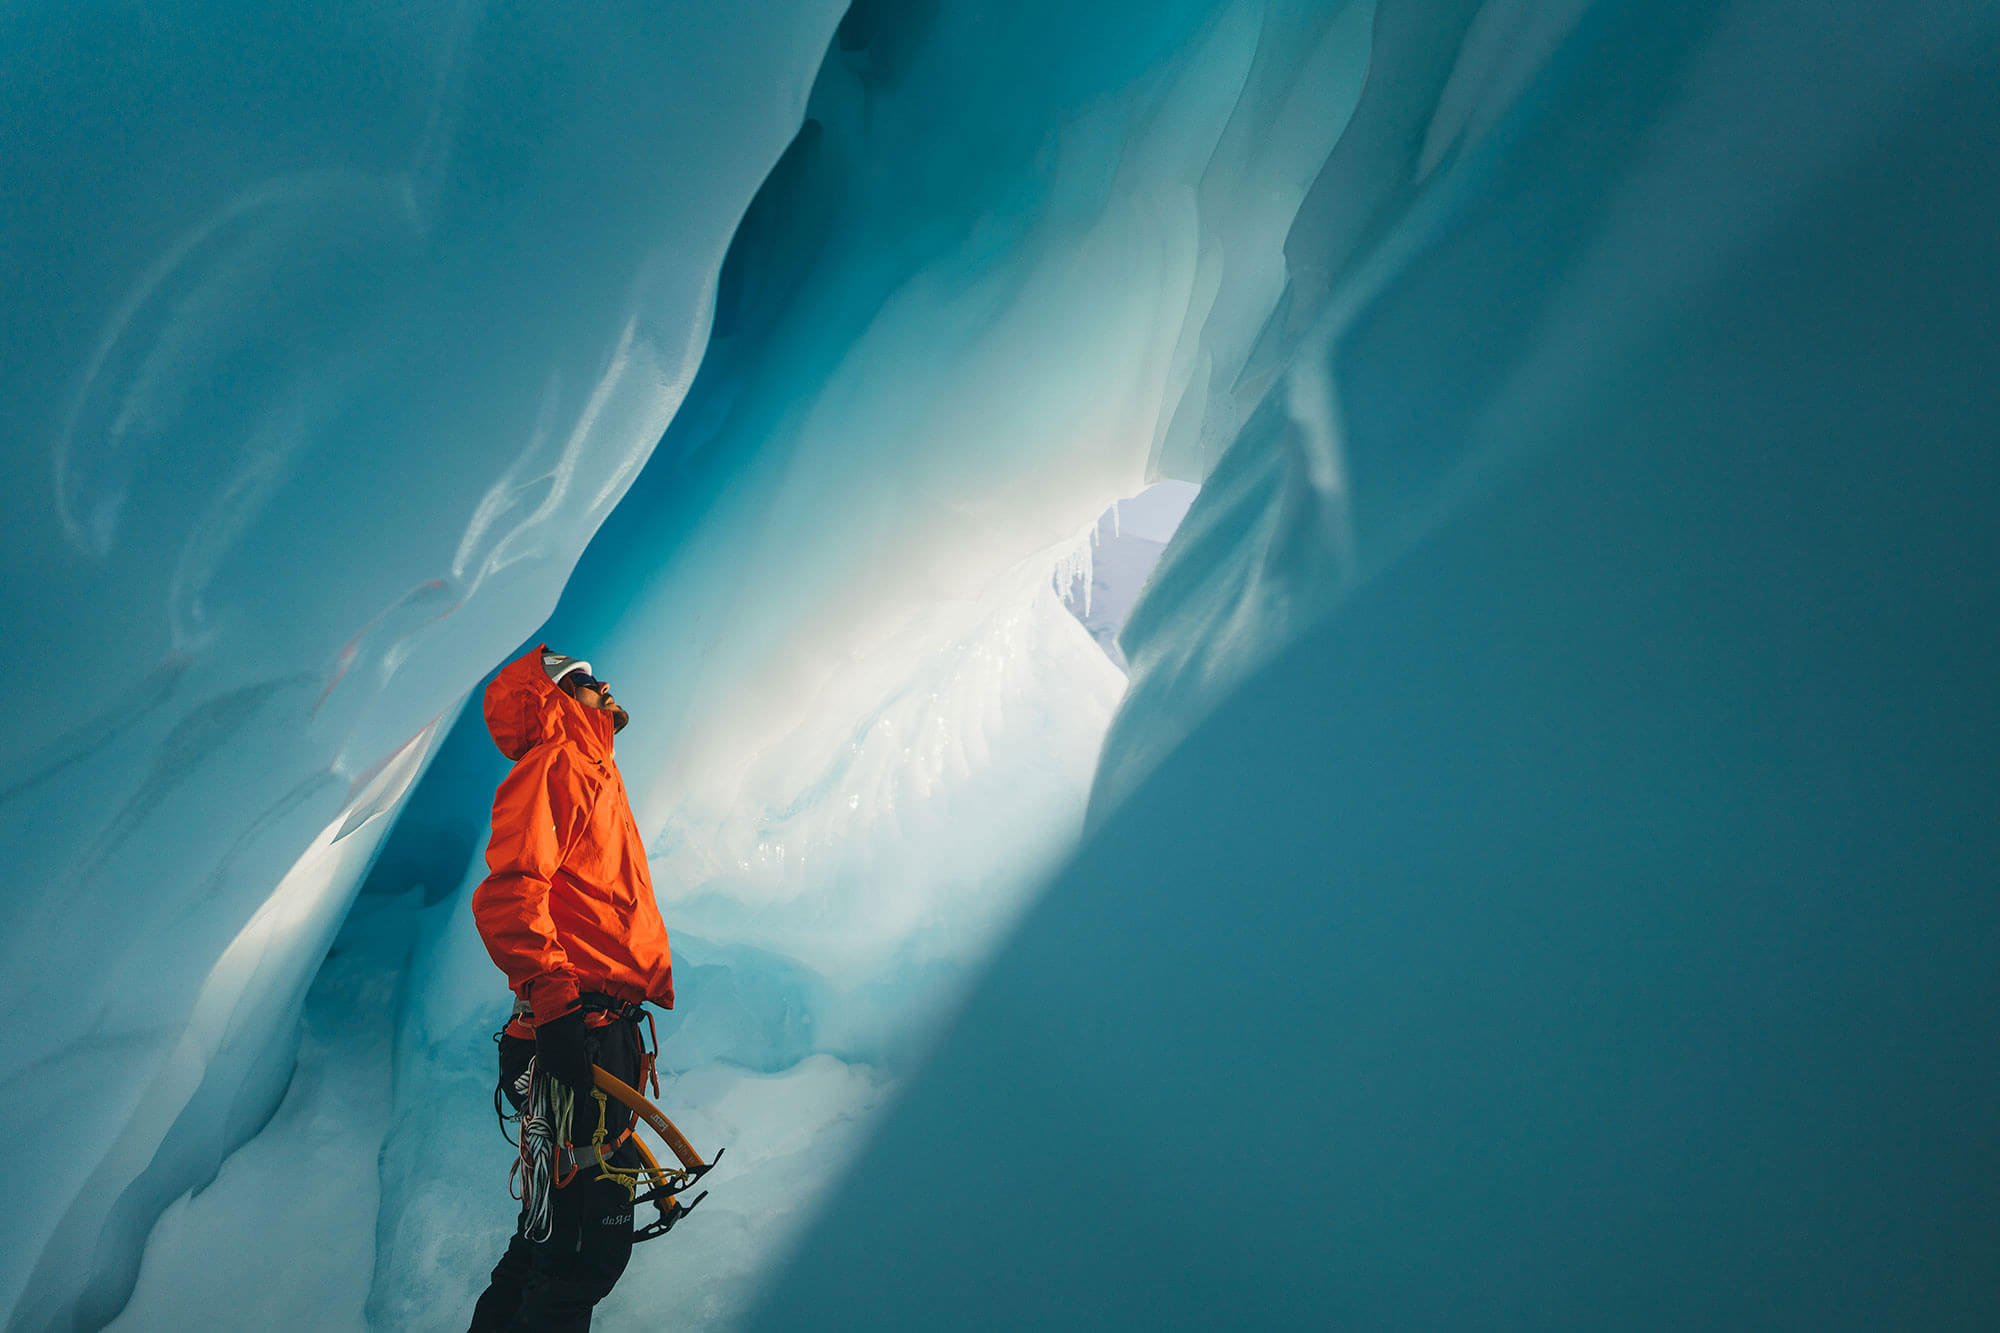 Photo of explorer in ice cavern by Stefan Haworth